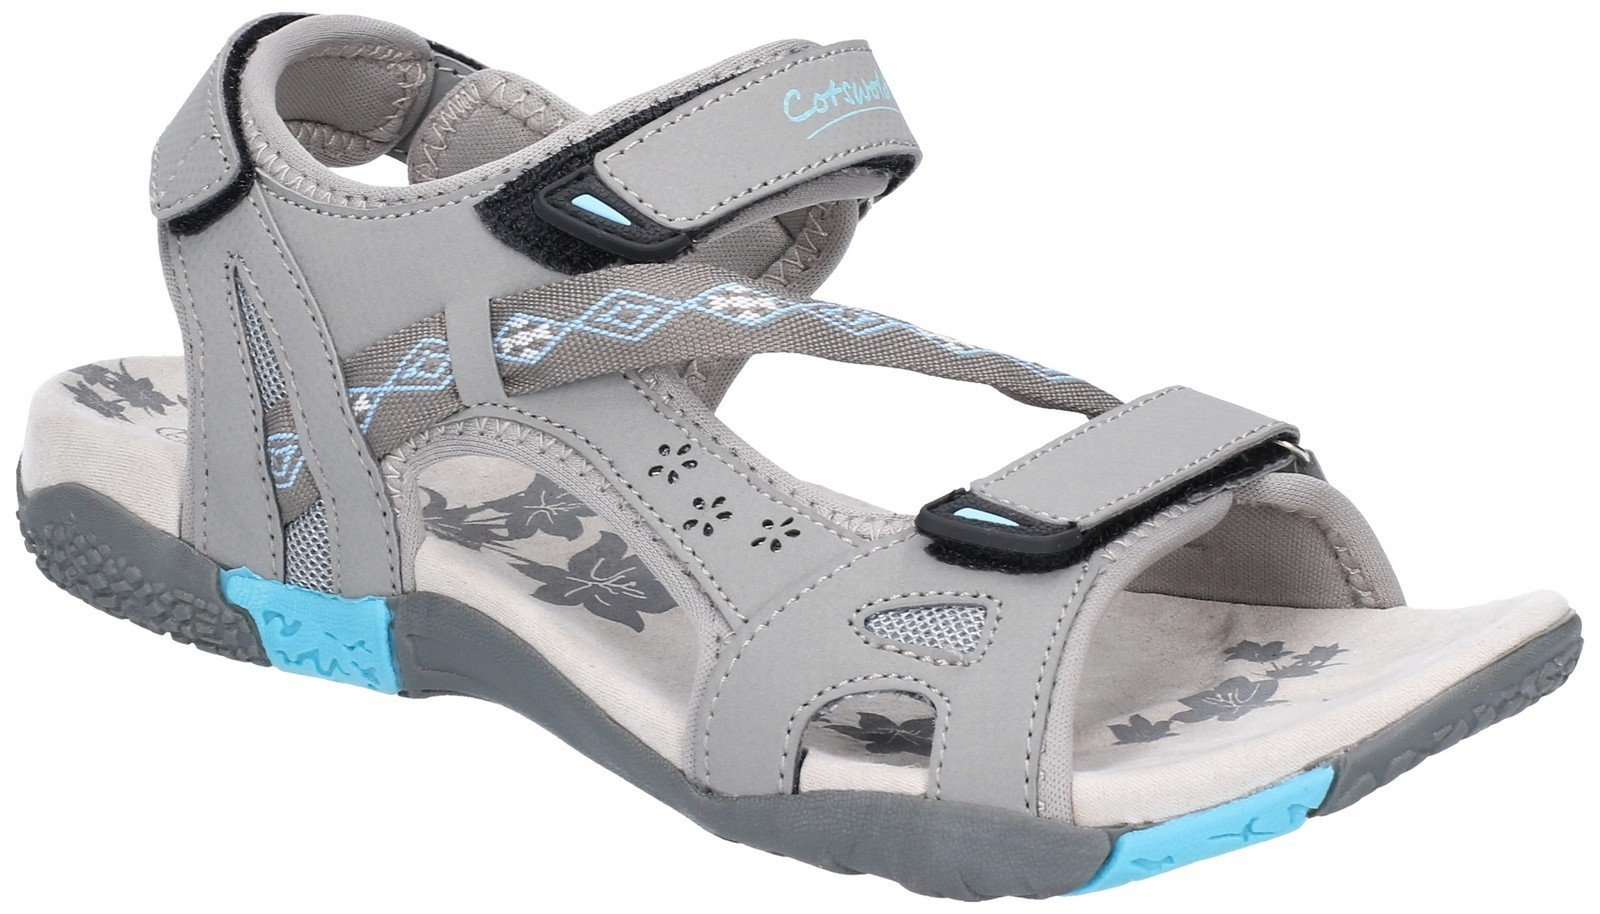 Cotswold Women's Whichford Touch Fasten Sandal Various Colours 28233 - Grey/Light Blue 3